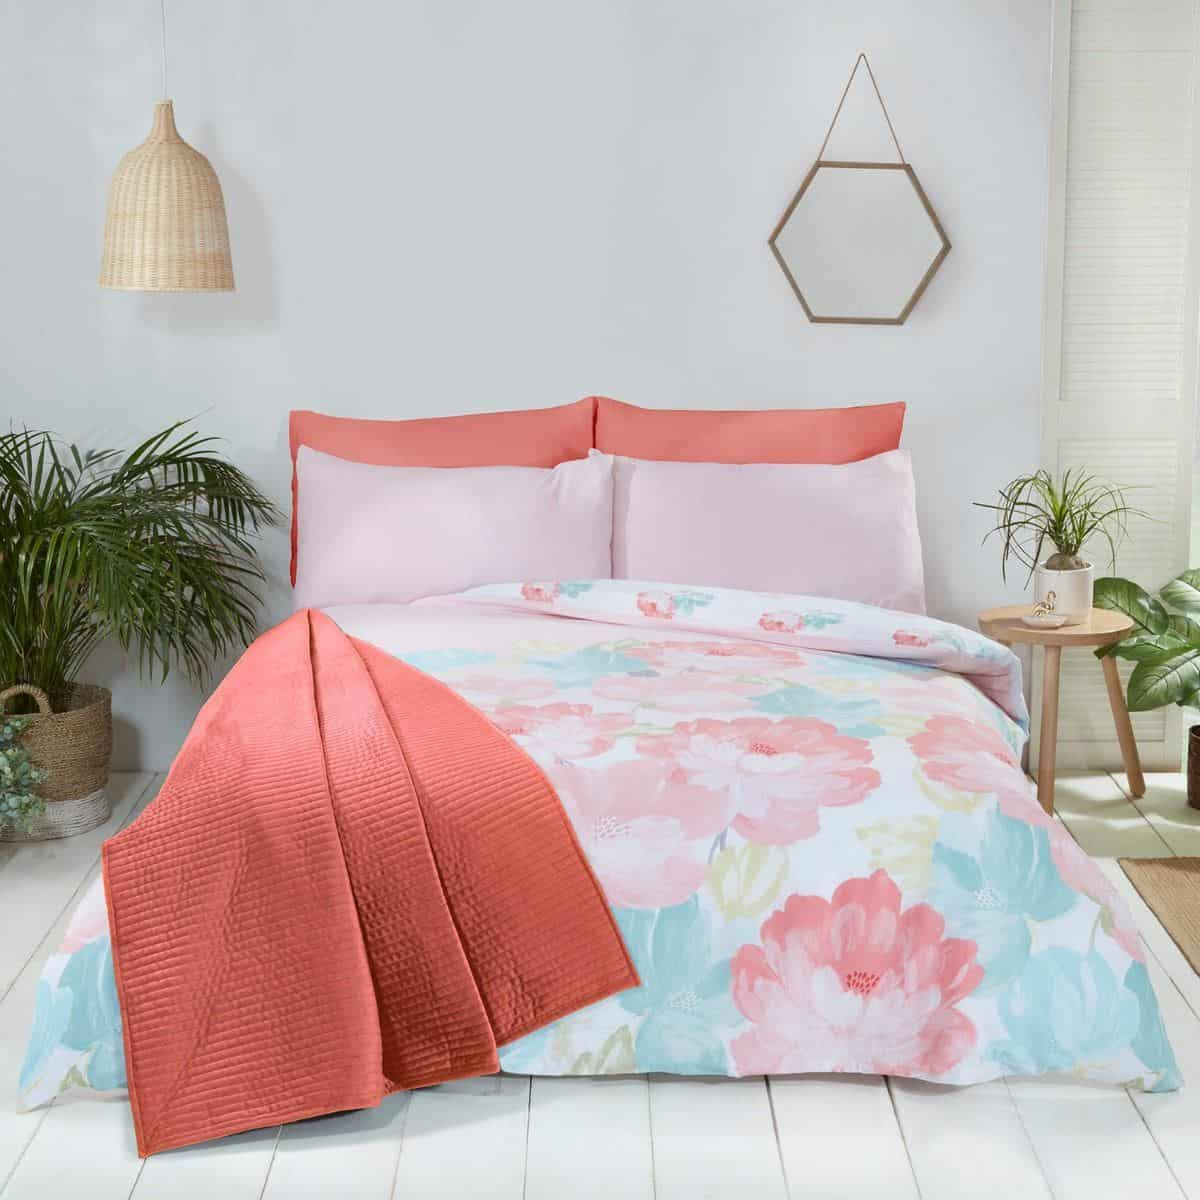 A coral and blue floral bedroom in soft tones will help to promote good quality sleep